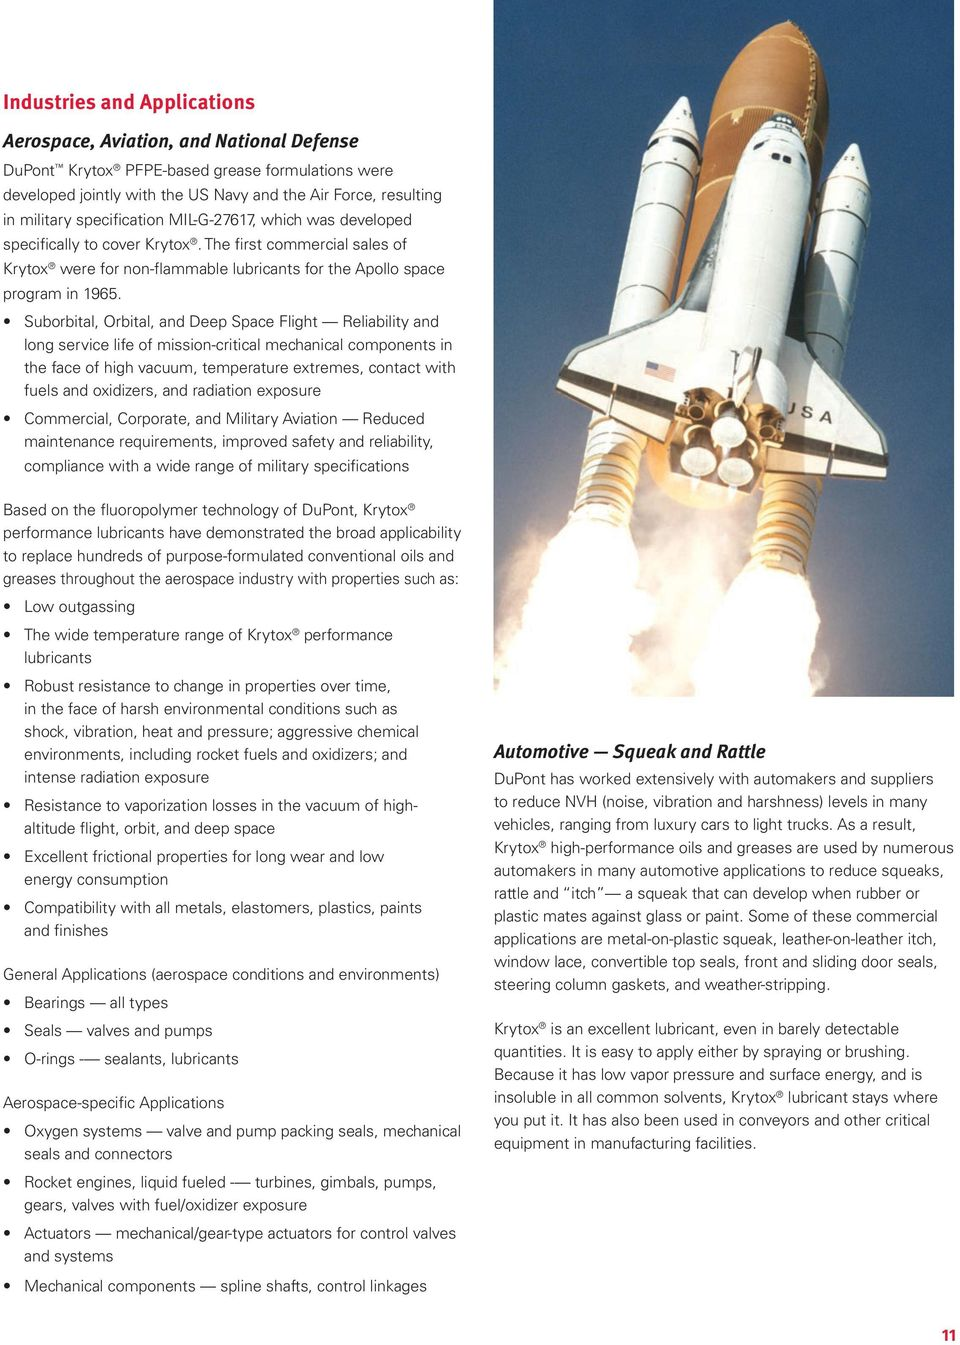 Suborbital, Orbital, and Deep Space Flight Reliability and long service life of mission-critical mechanical components in the face of high vacuum, temperature extremes, contact with fuels and